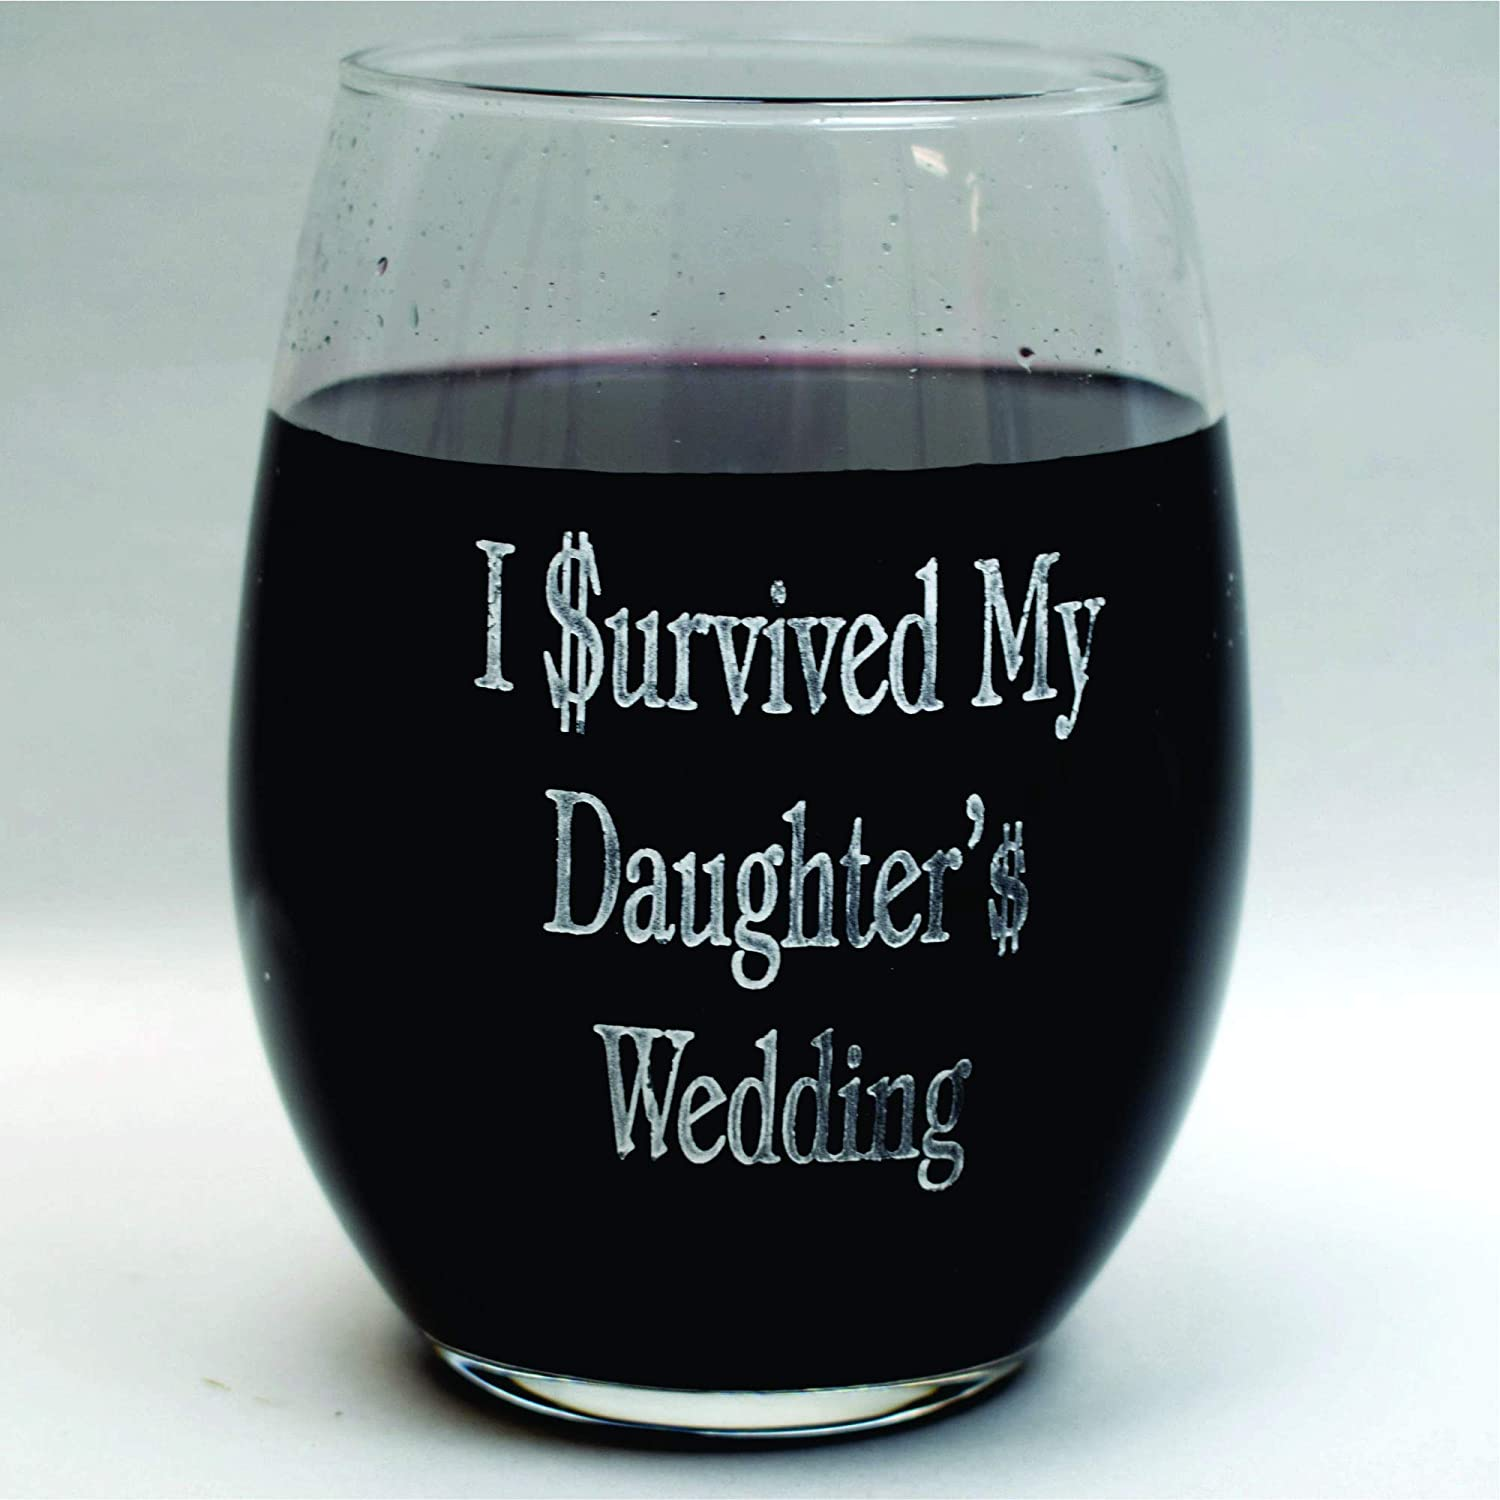 I Survived My Daughter's Wedding sandcarved Stemless 21 ounce wine glass